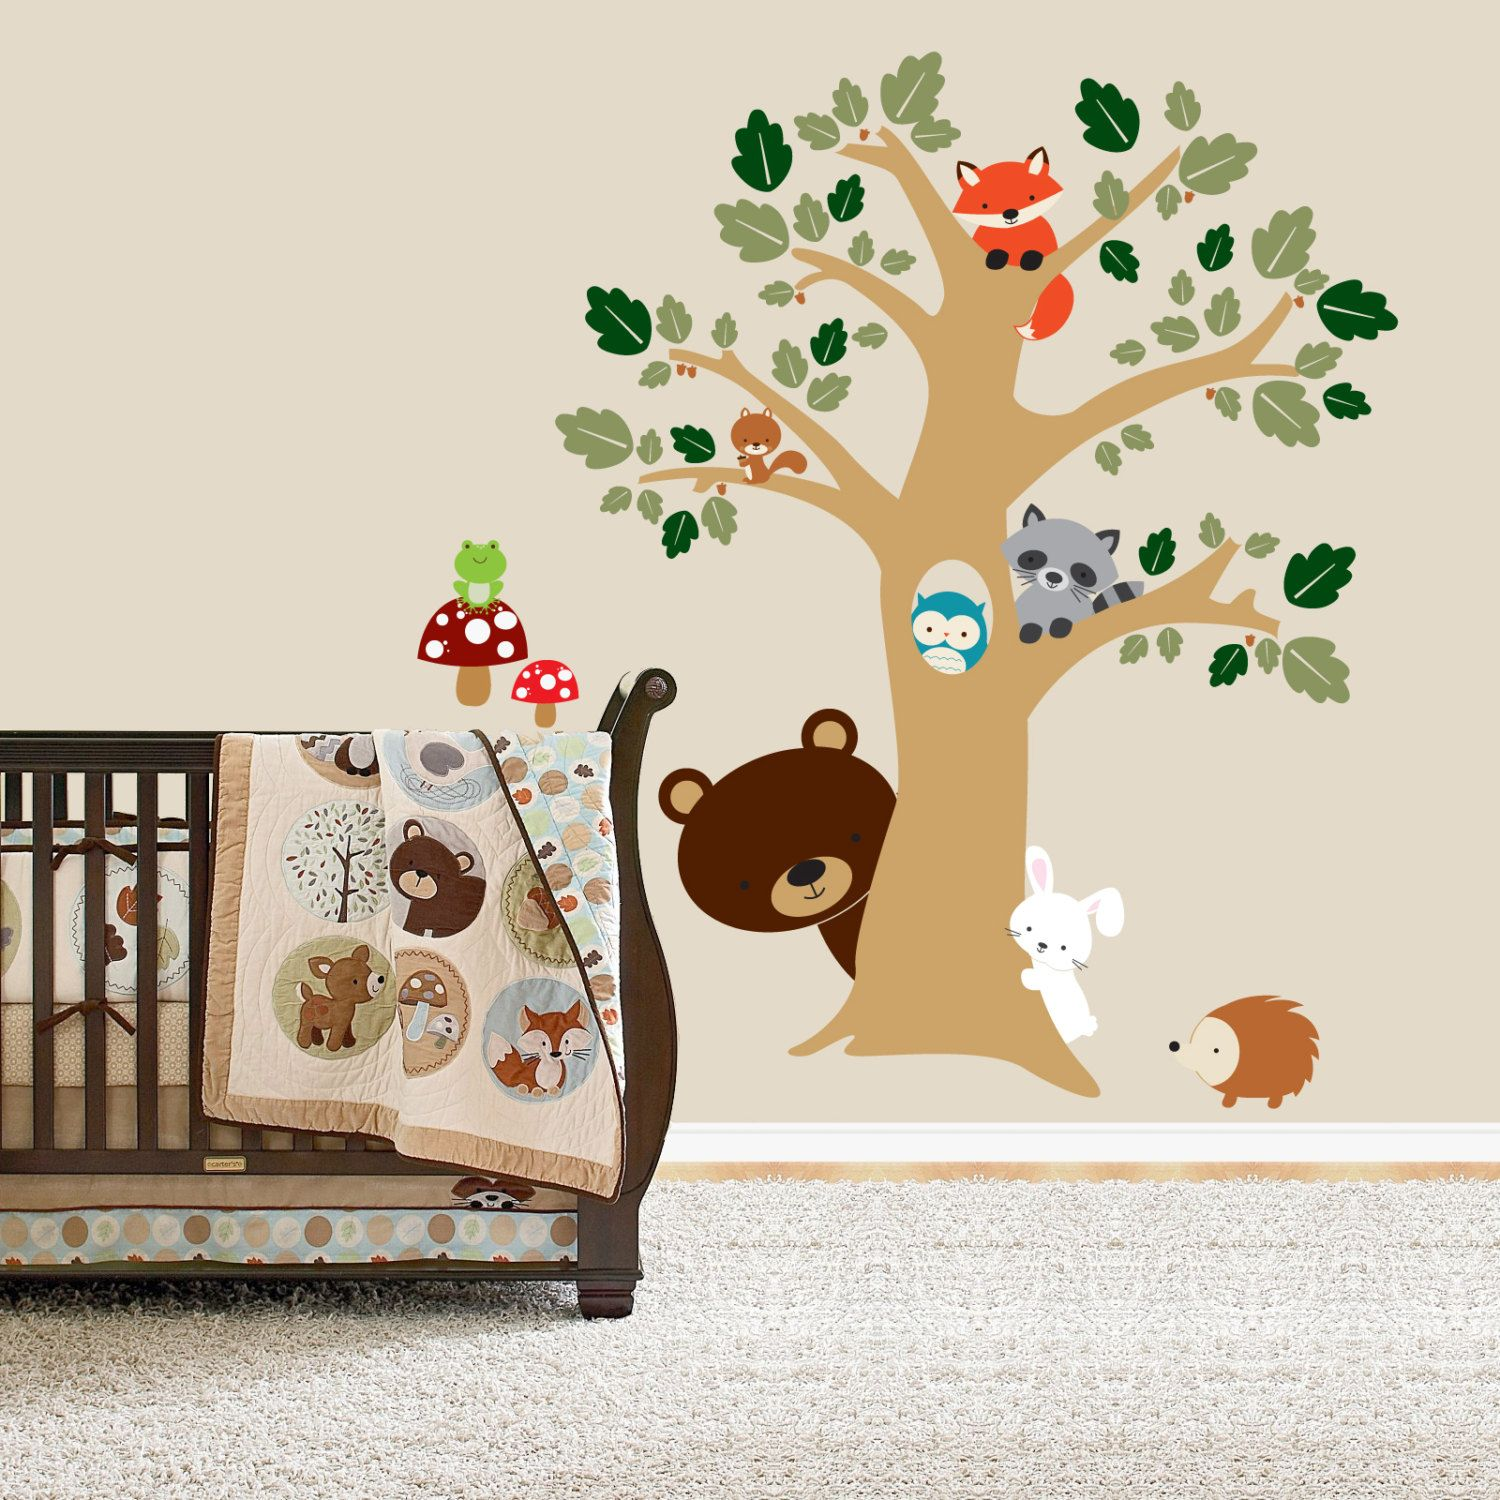 Forest Friends Room Peek A Boo Tree Woodland Animals Decal - Vinyl wall decals animals